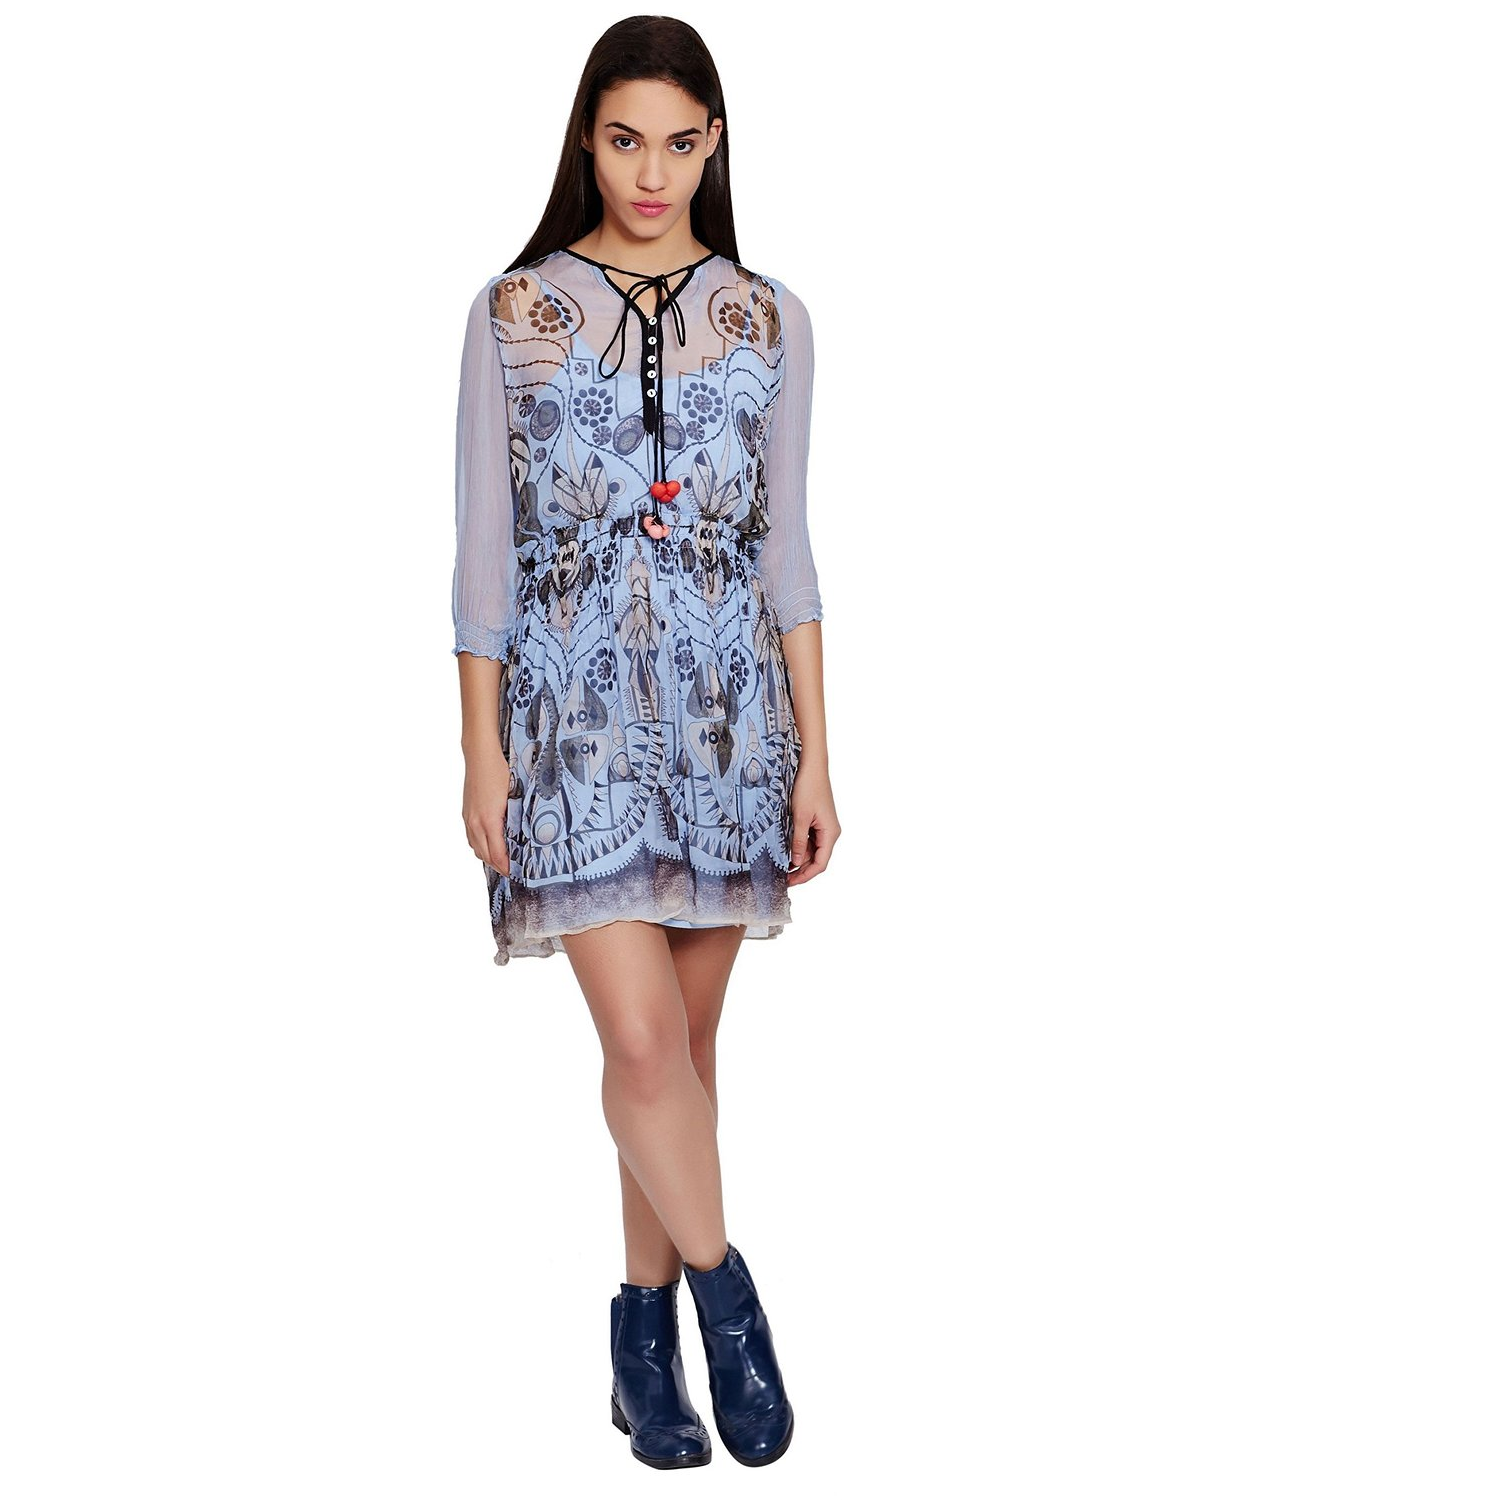 Ritu Kumar Designer Blue Mini Dress With Exquisite Floral Prints And Pleated Detailing